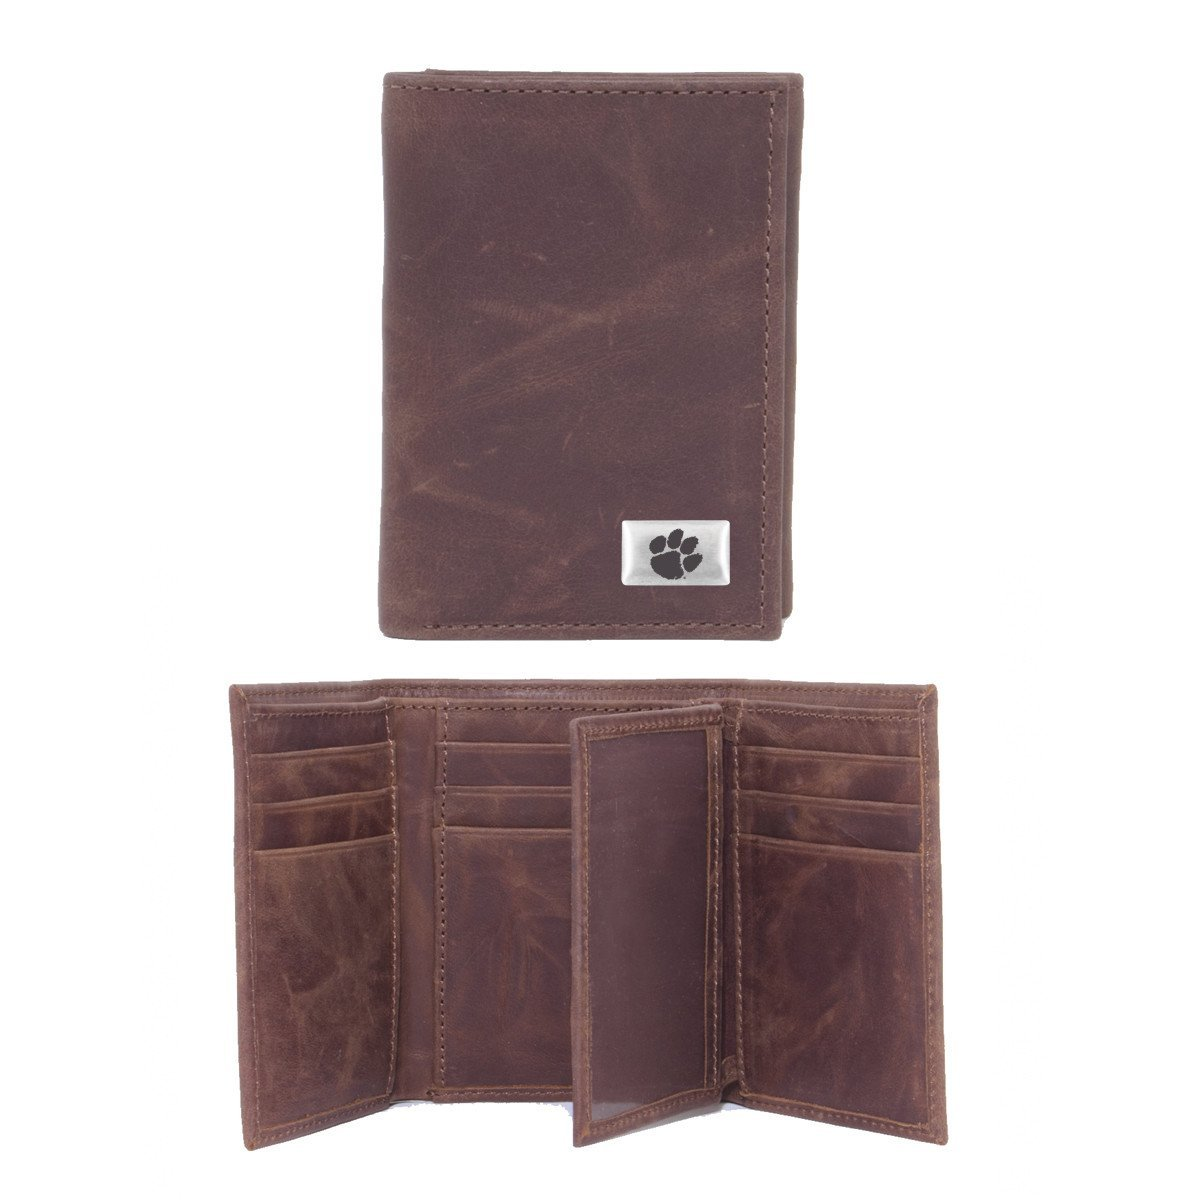 Brown Leather Tri Fold Wallet With Silver/black Paw Concho - Mr. Knickerbocker